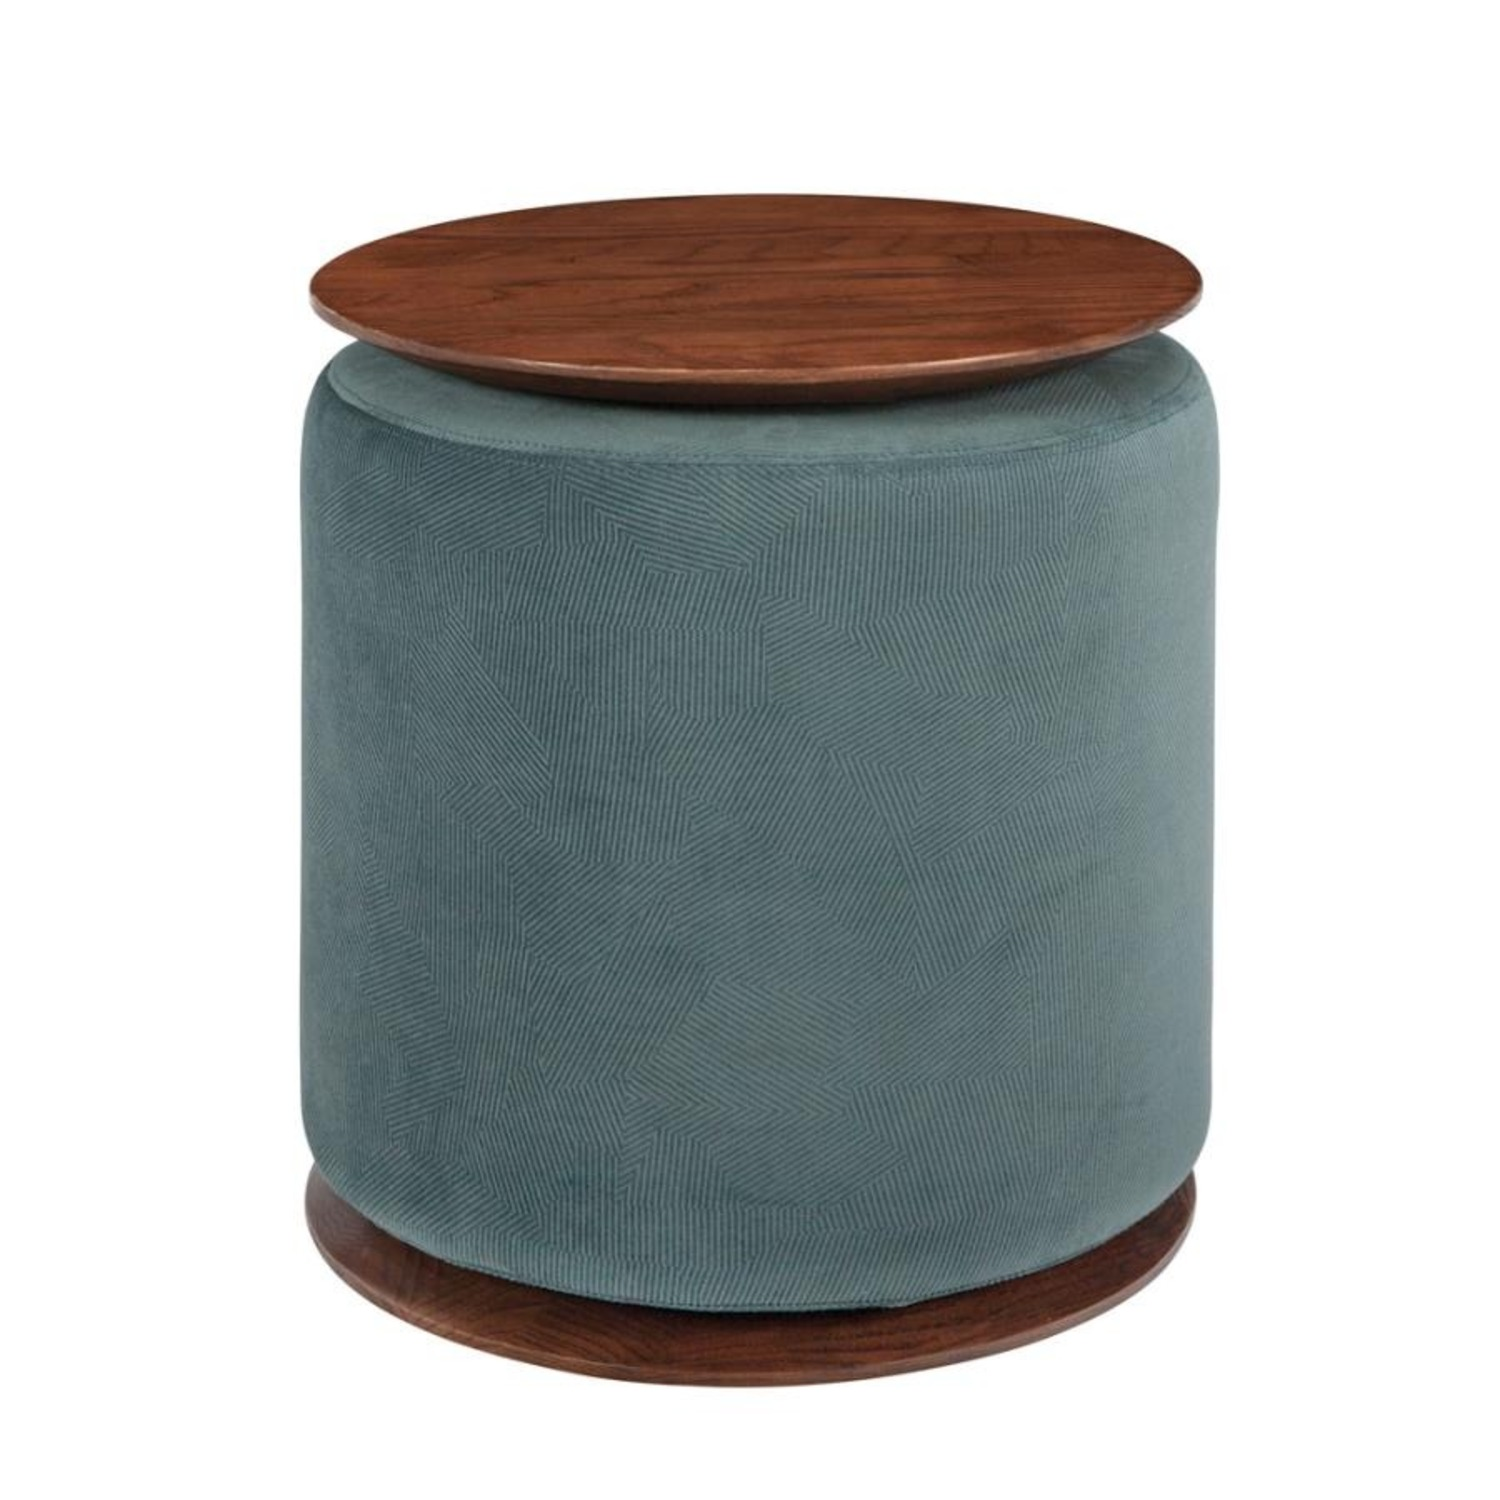 Accent Table W/ Ottoman In Teal Velvet Finish - image-0